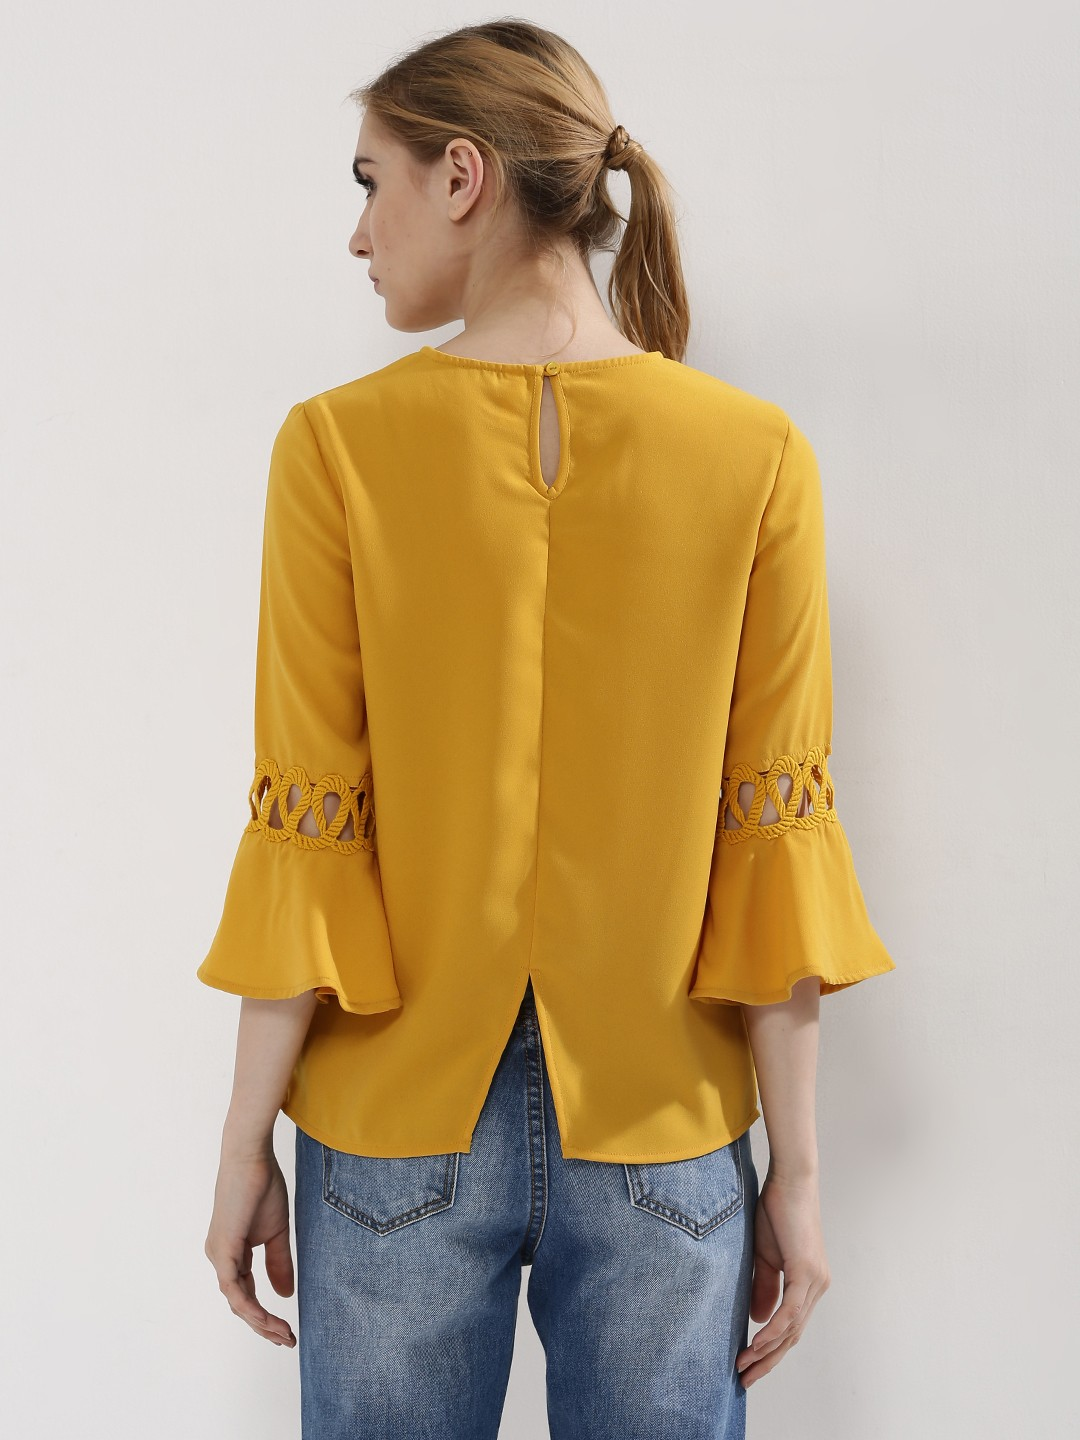 Buy Femella Front Ruffle Top For Women: Buy Femella Mustard Bell Sleeve Top With Lace Insert For